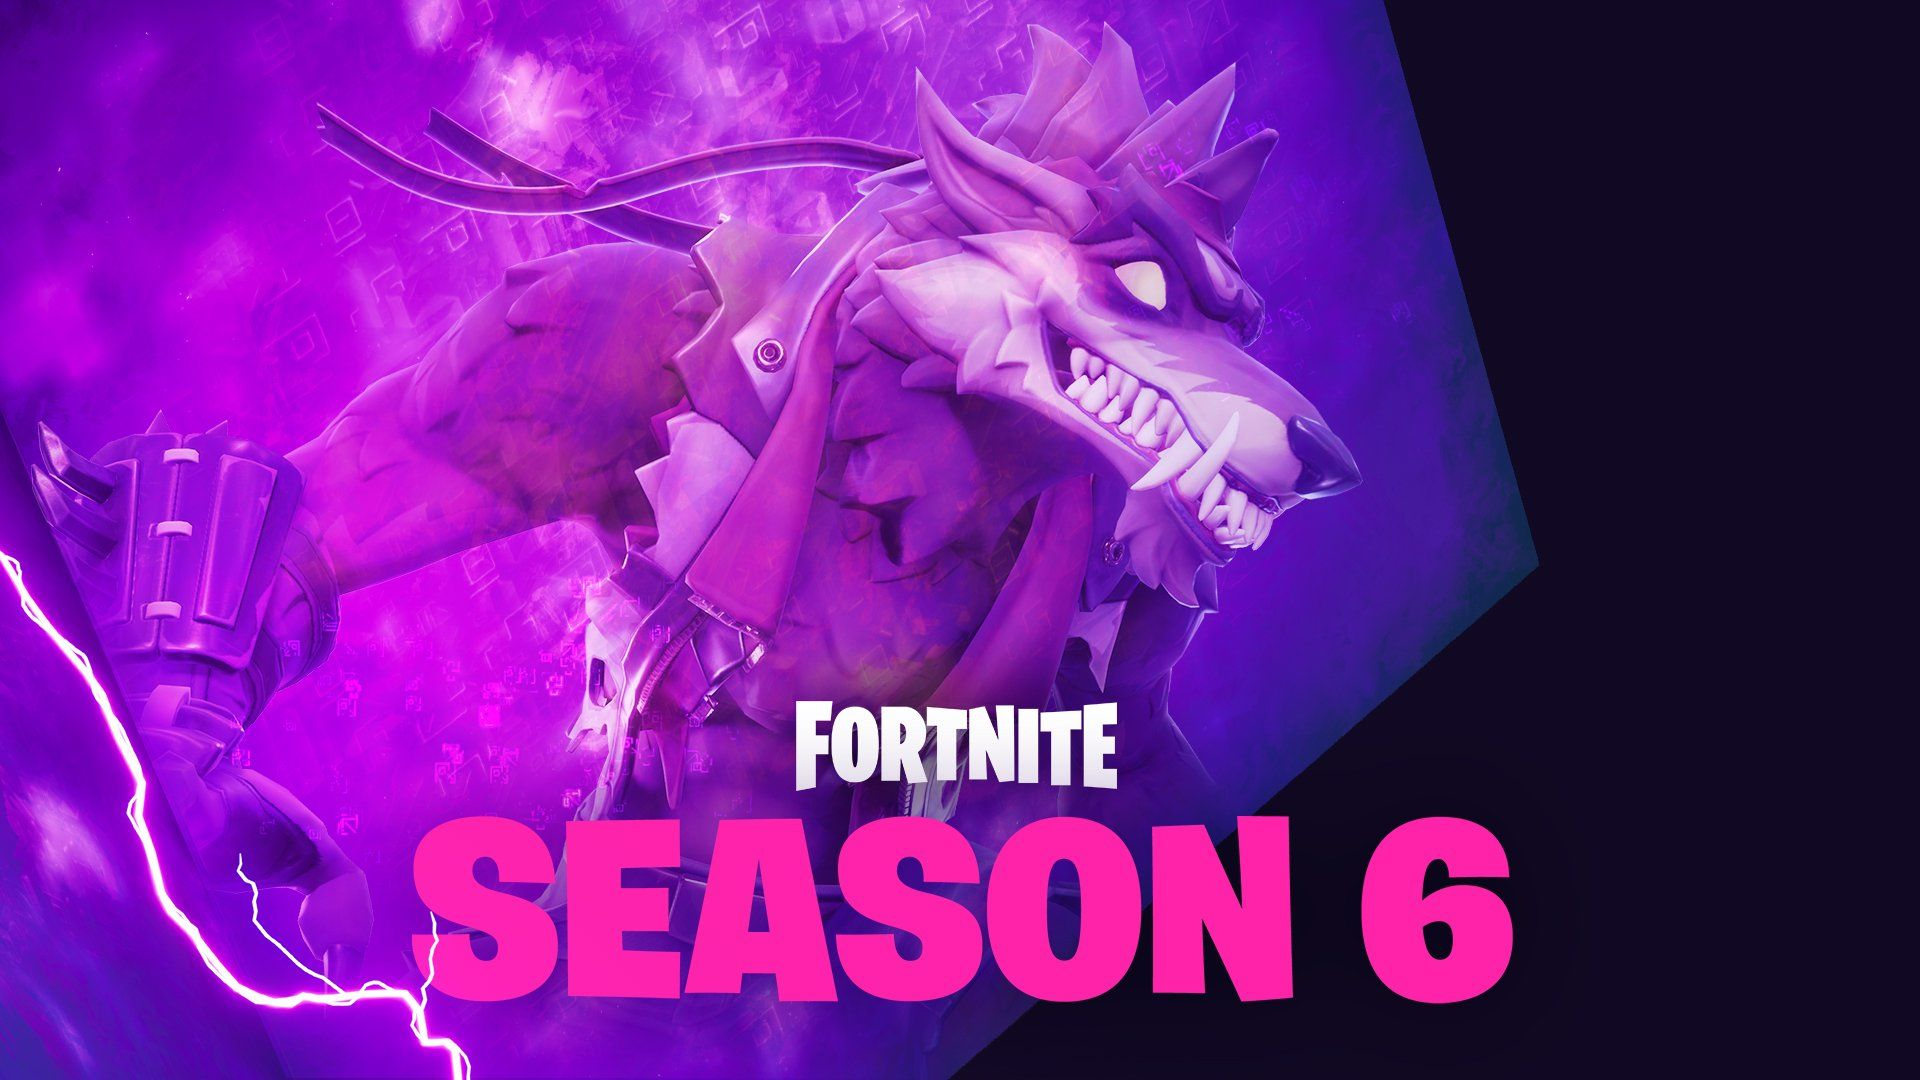 Fortnite: Season 6